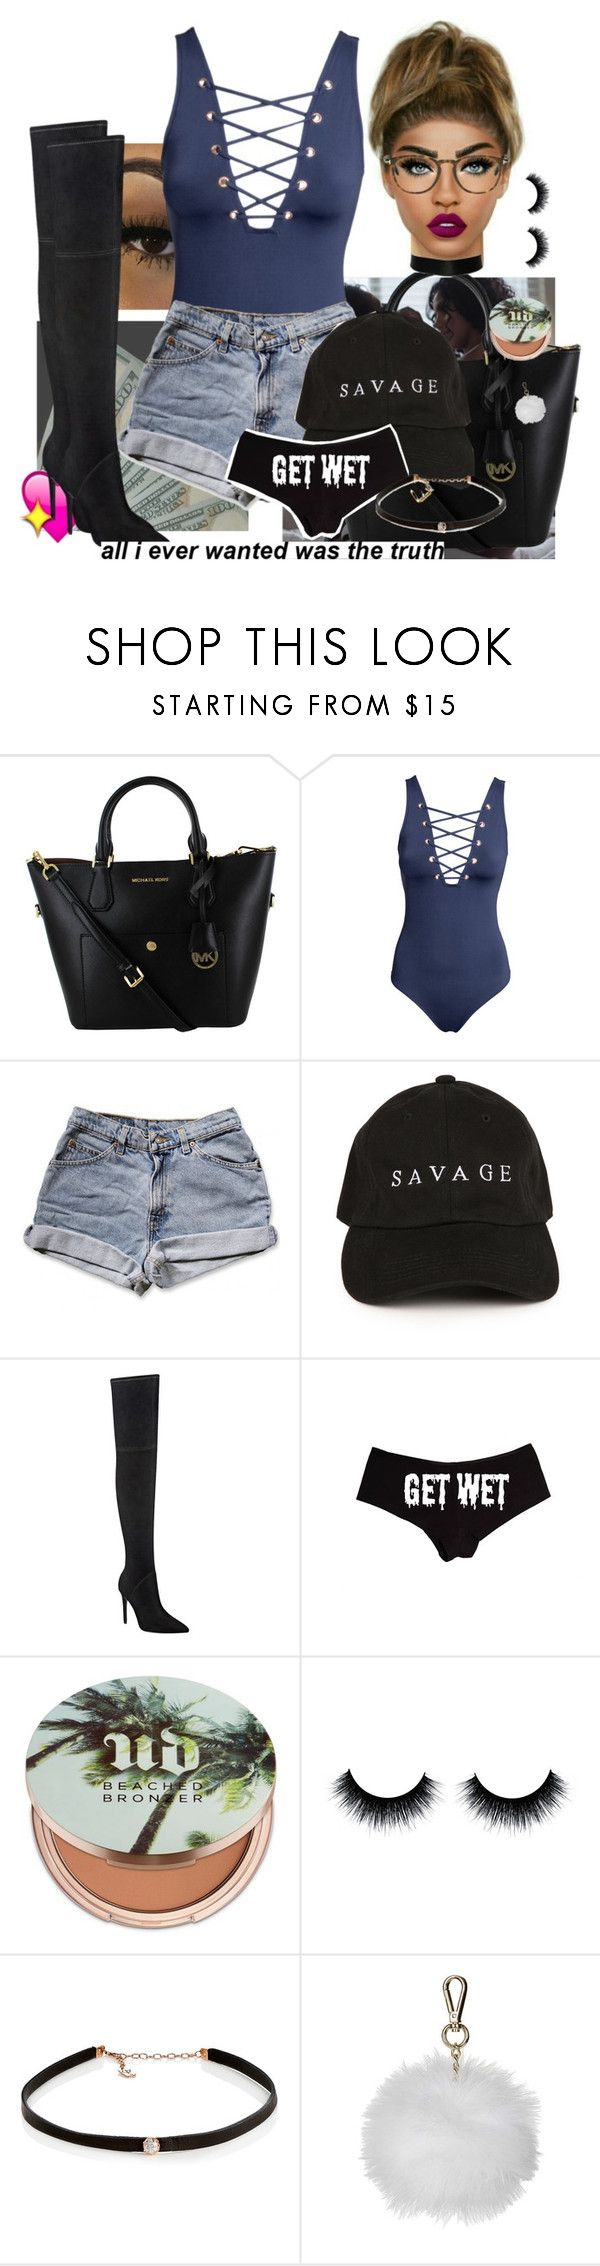 """Up all night."" by yungbeckyy ❤ liked on Polyvore featuring H&M, Kendall + Kylie, Urban Decay, Carbon & Hyde and Topshop"